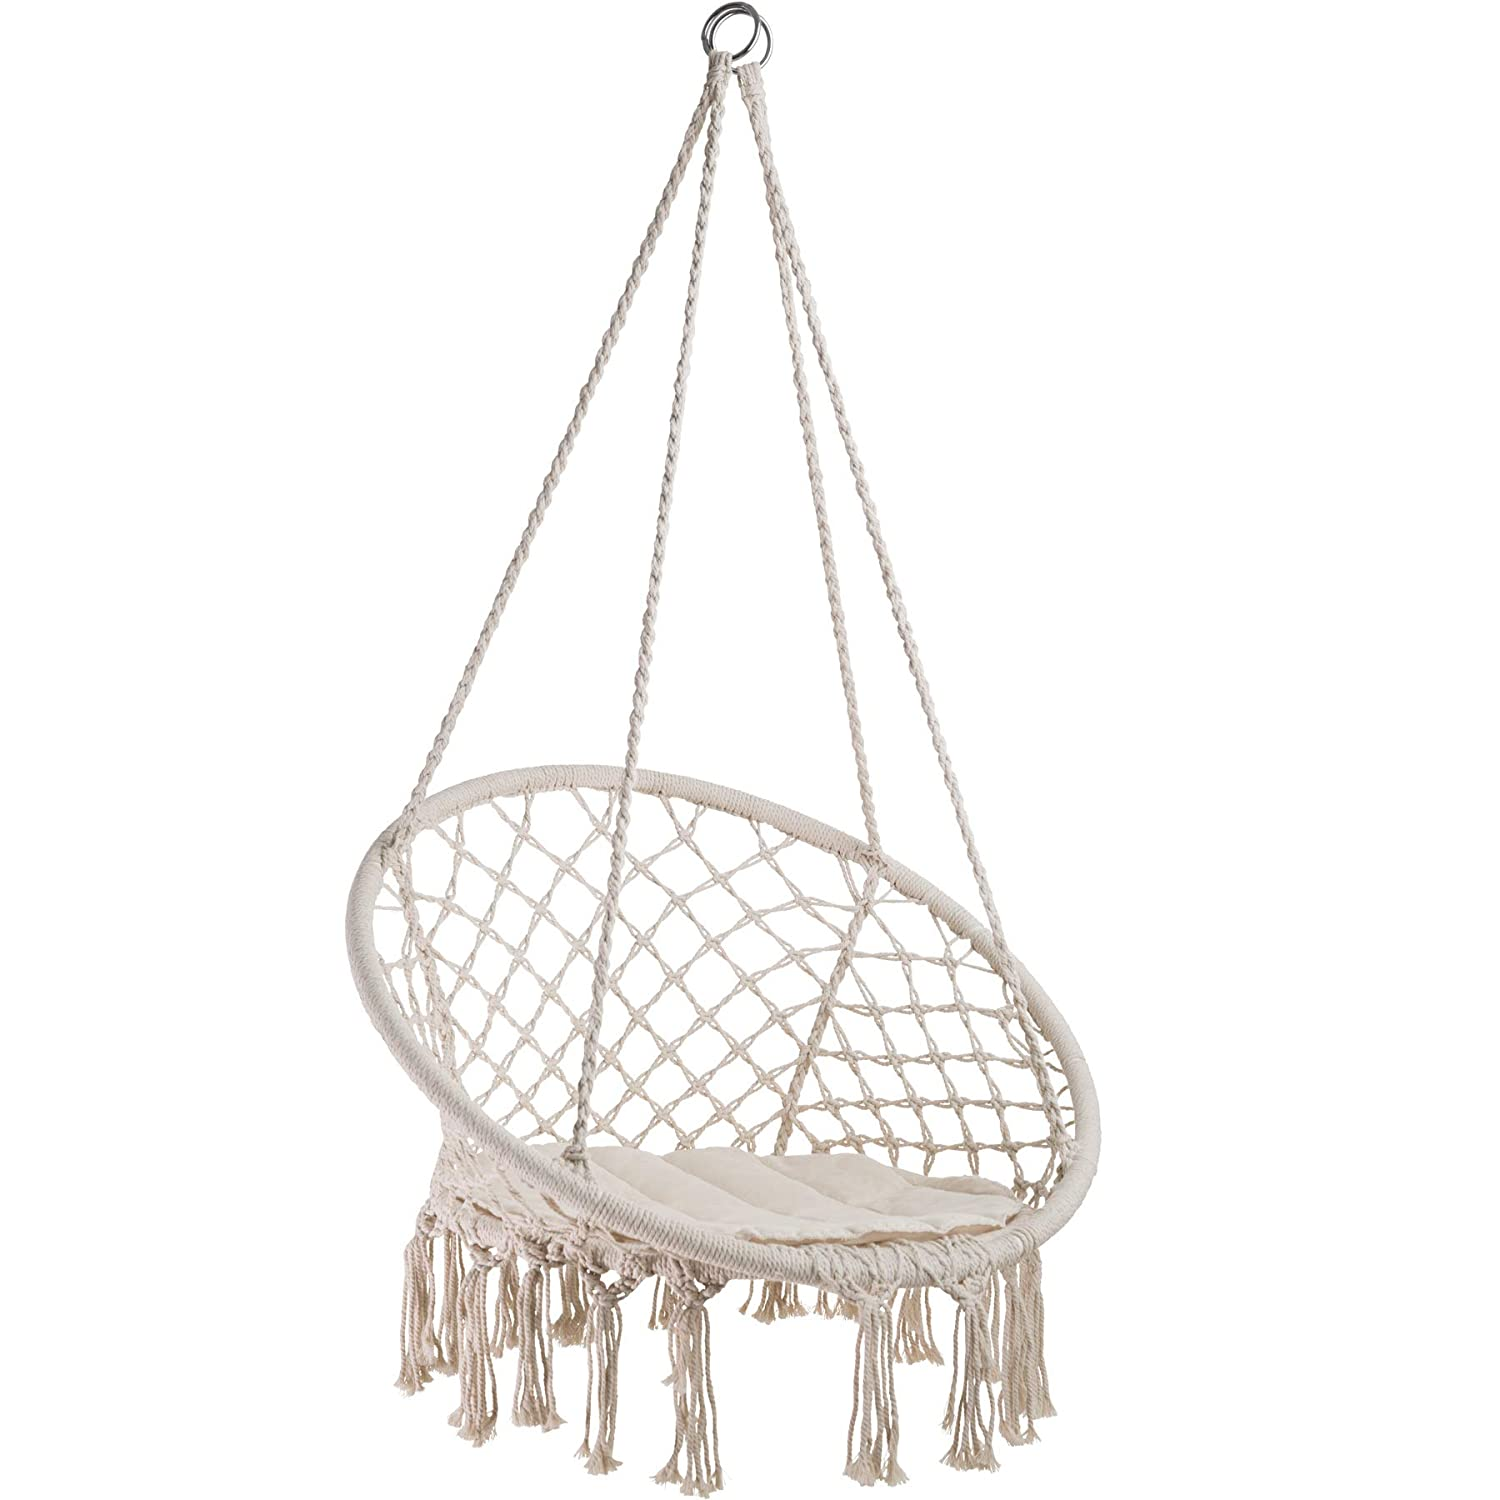 TecTake 402986 - Hanging Chair, Attractive Look and Feel, Robust and durable Construction, For Inside and Outside